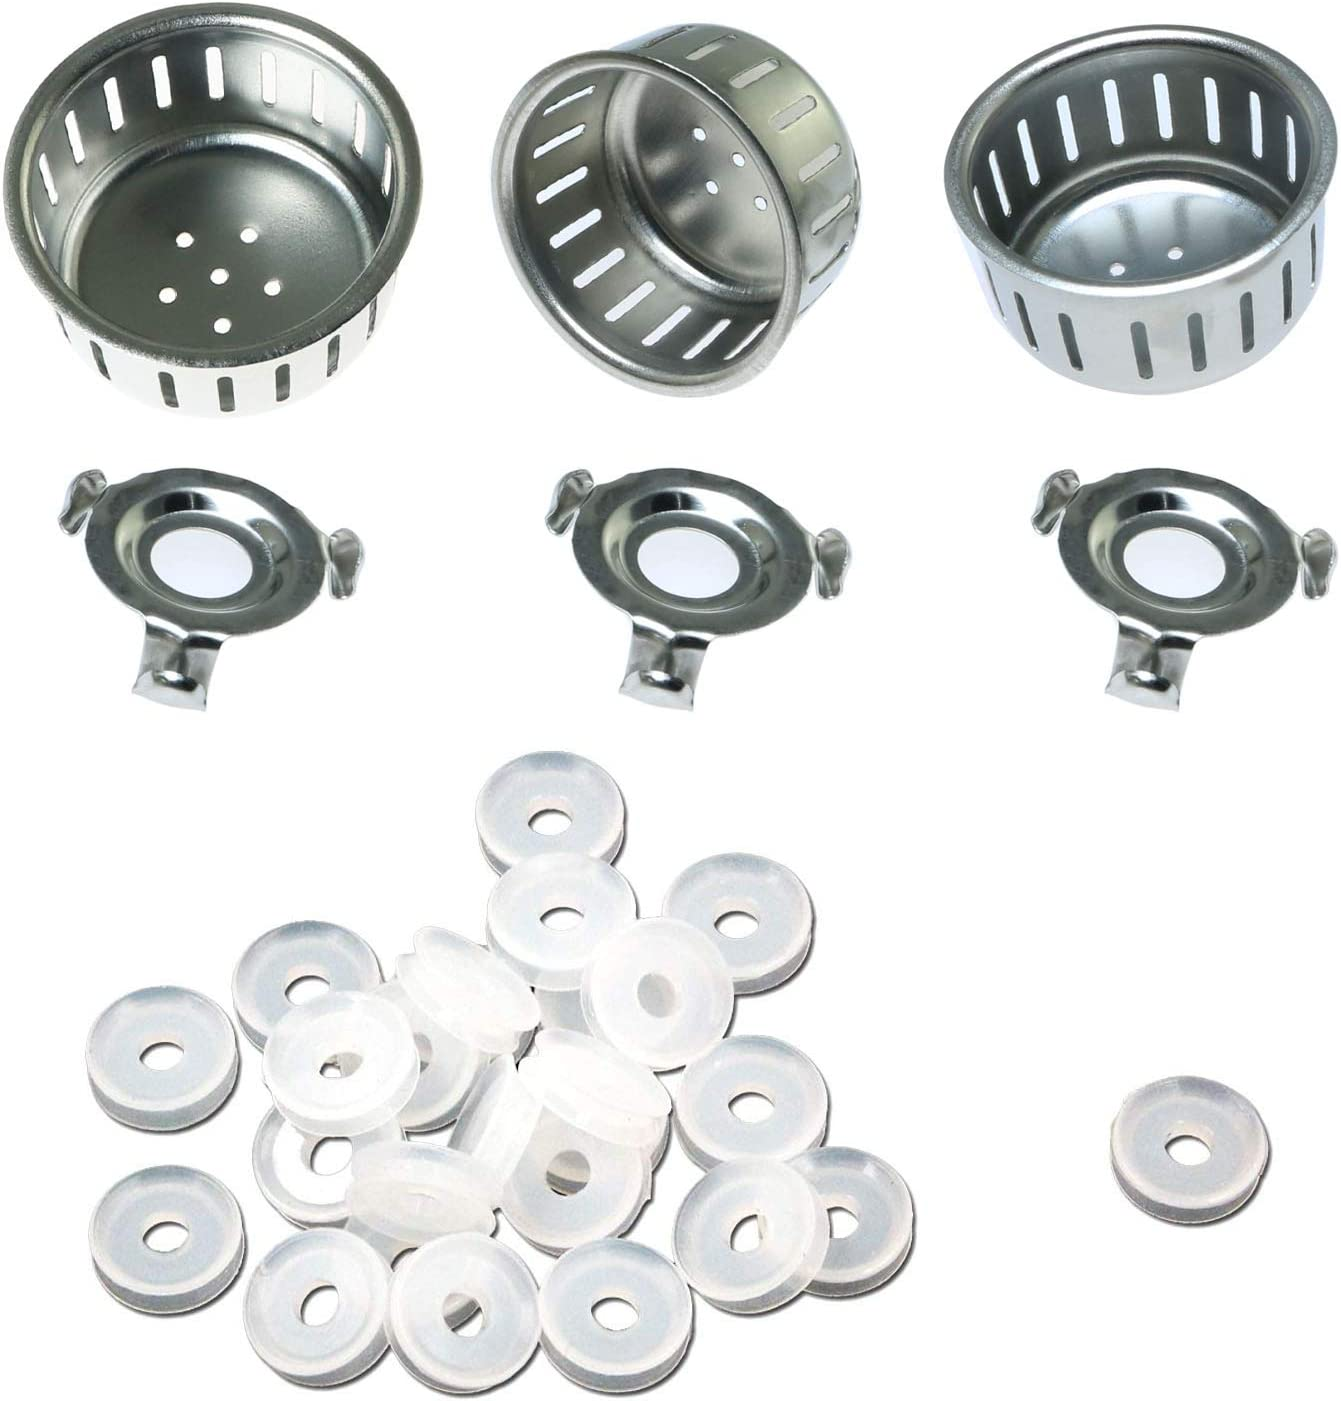 TOTOT 20pcs Float Valve Gaskets Electrical Pressure Cooker Replacement Parts and 3 Sets Anti-Block Shield for Instant Pot